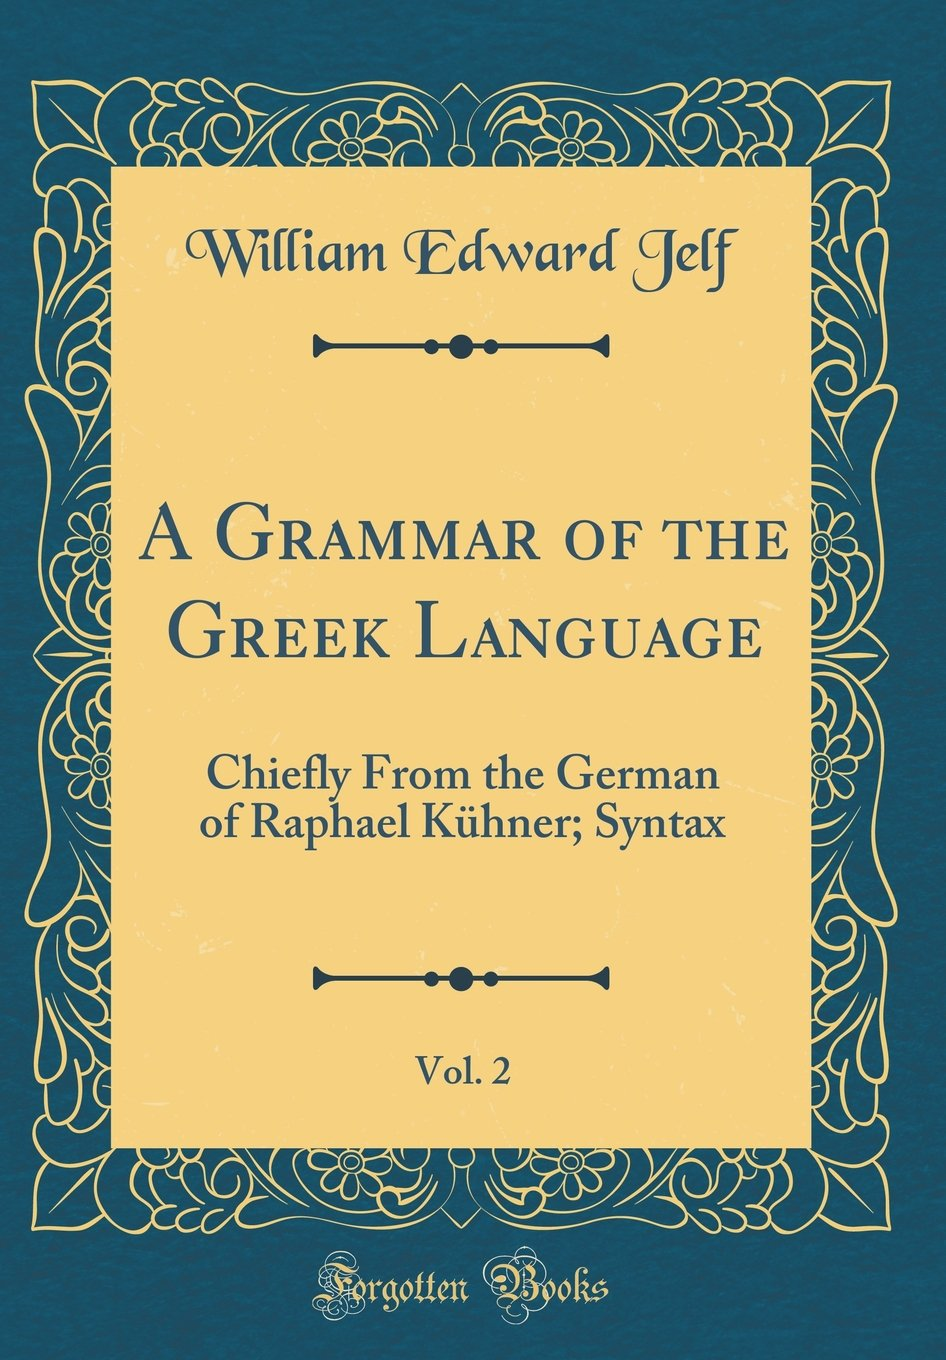 Read Online A Grammar of the Greek Language, Vol. 2: Chiefly from the German of Raphael Kühner; Syntax (Classic Reprint) PDF